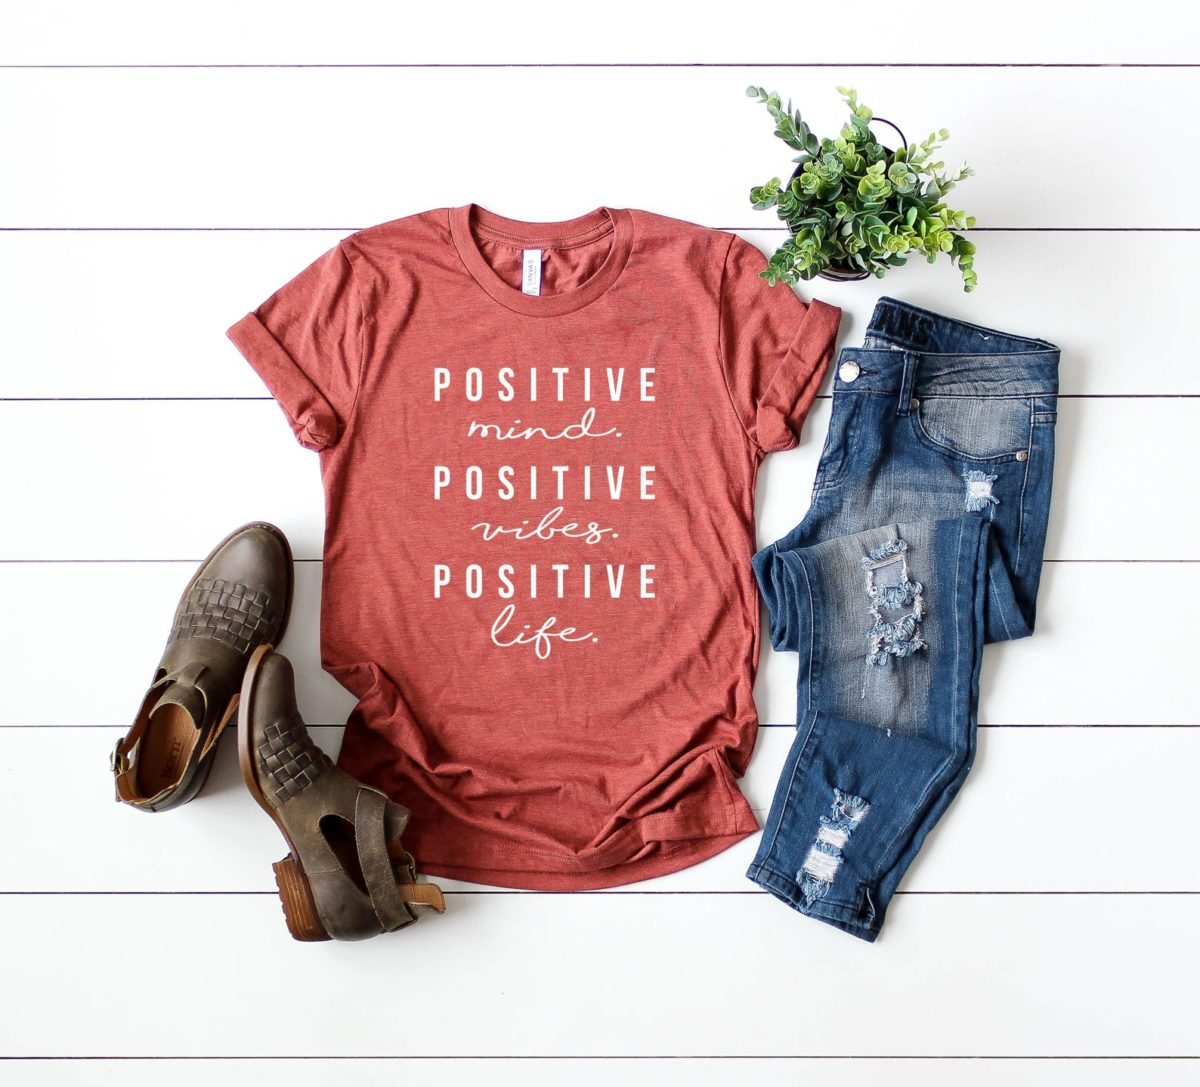 26 awesome etsy t-shirts that send a positive message and make great gifts | parenting questions | mamas uncut il 1588xn.2134760284 f40d